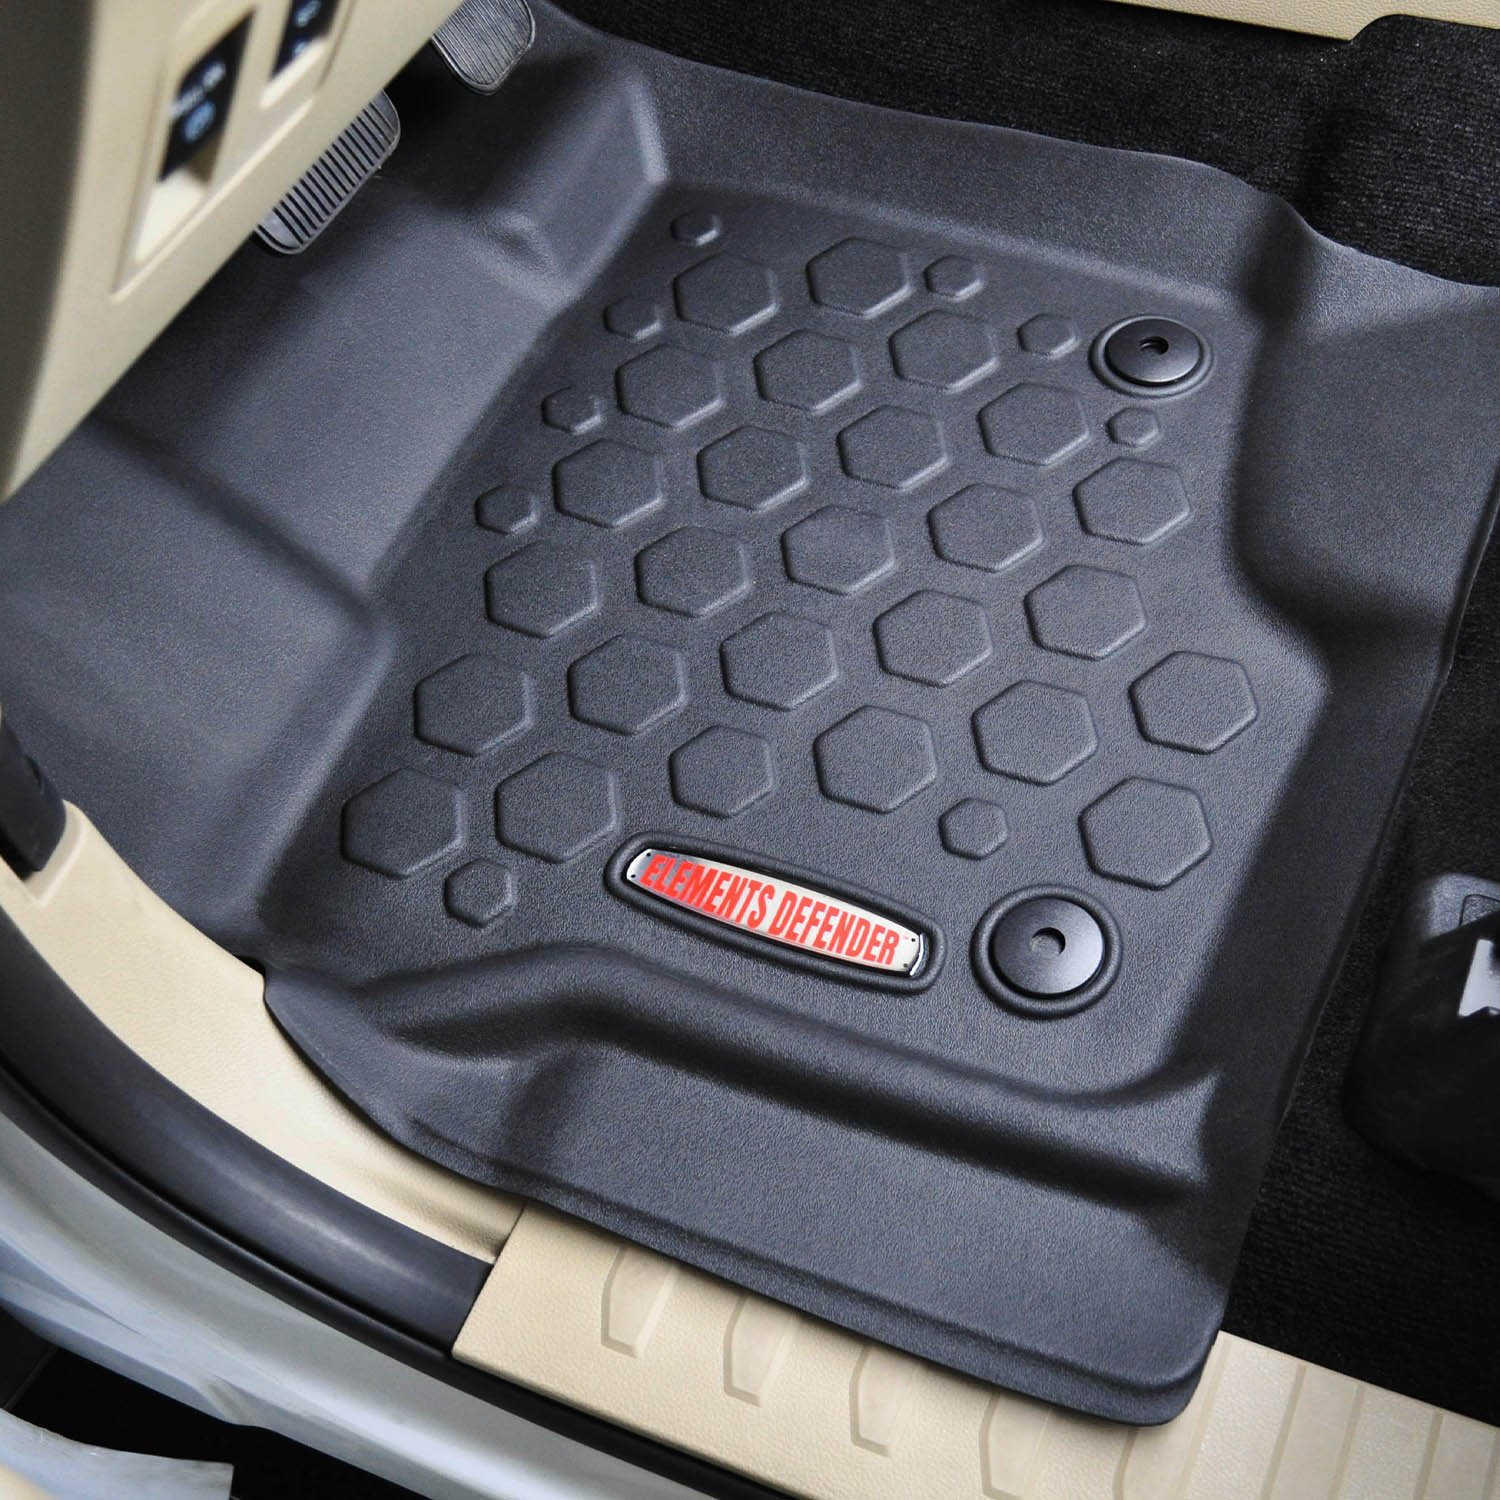 Amazon com 2015 2017 ford f 150 floor mats front rear liners 100 weather resistant fits crew cab f150 trucks in 20152016 2017 models